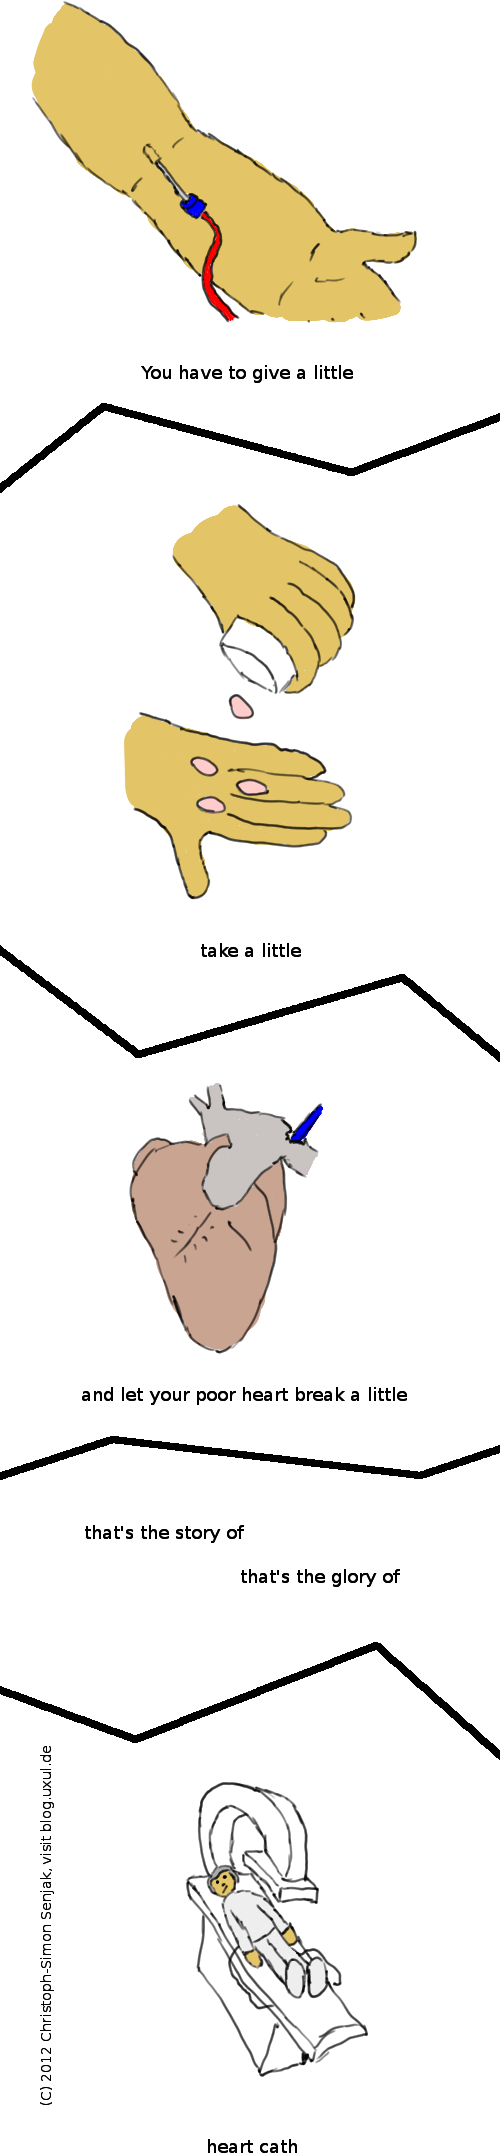 "Panel 1: An arm is shown that has a blood letting needle in its vein. Subtext: ""You have to give a little"" -- Panel 2: Two hands are shown, one holds a can, from which pills are falling into the other hand. Subtext: ""take a little"" -- Panel 3: A heart is shown. A blue needle is stinging into one artery. Subtext: ""and let your poor heart break a little"" -- Panel 4: Text: ""that's the story of - that's the glory of"" -- Panel 5: A person lying in a heart cath is shown. Subtext: ""heart cath""."